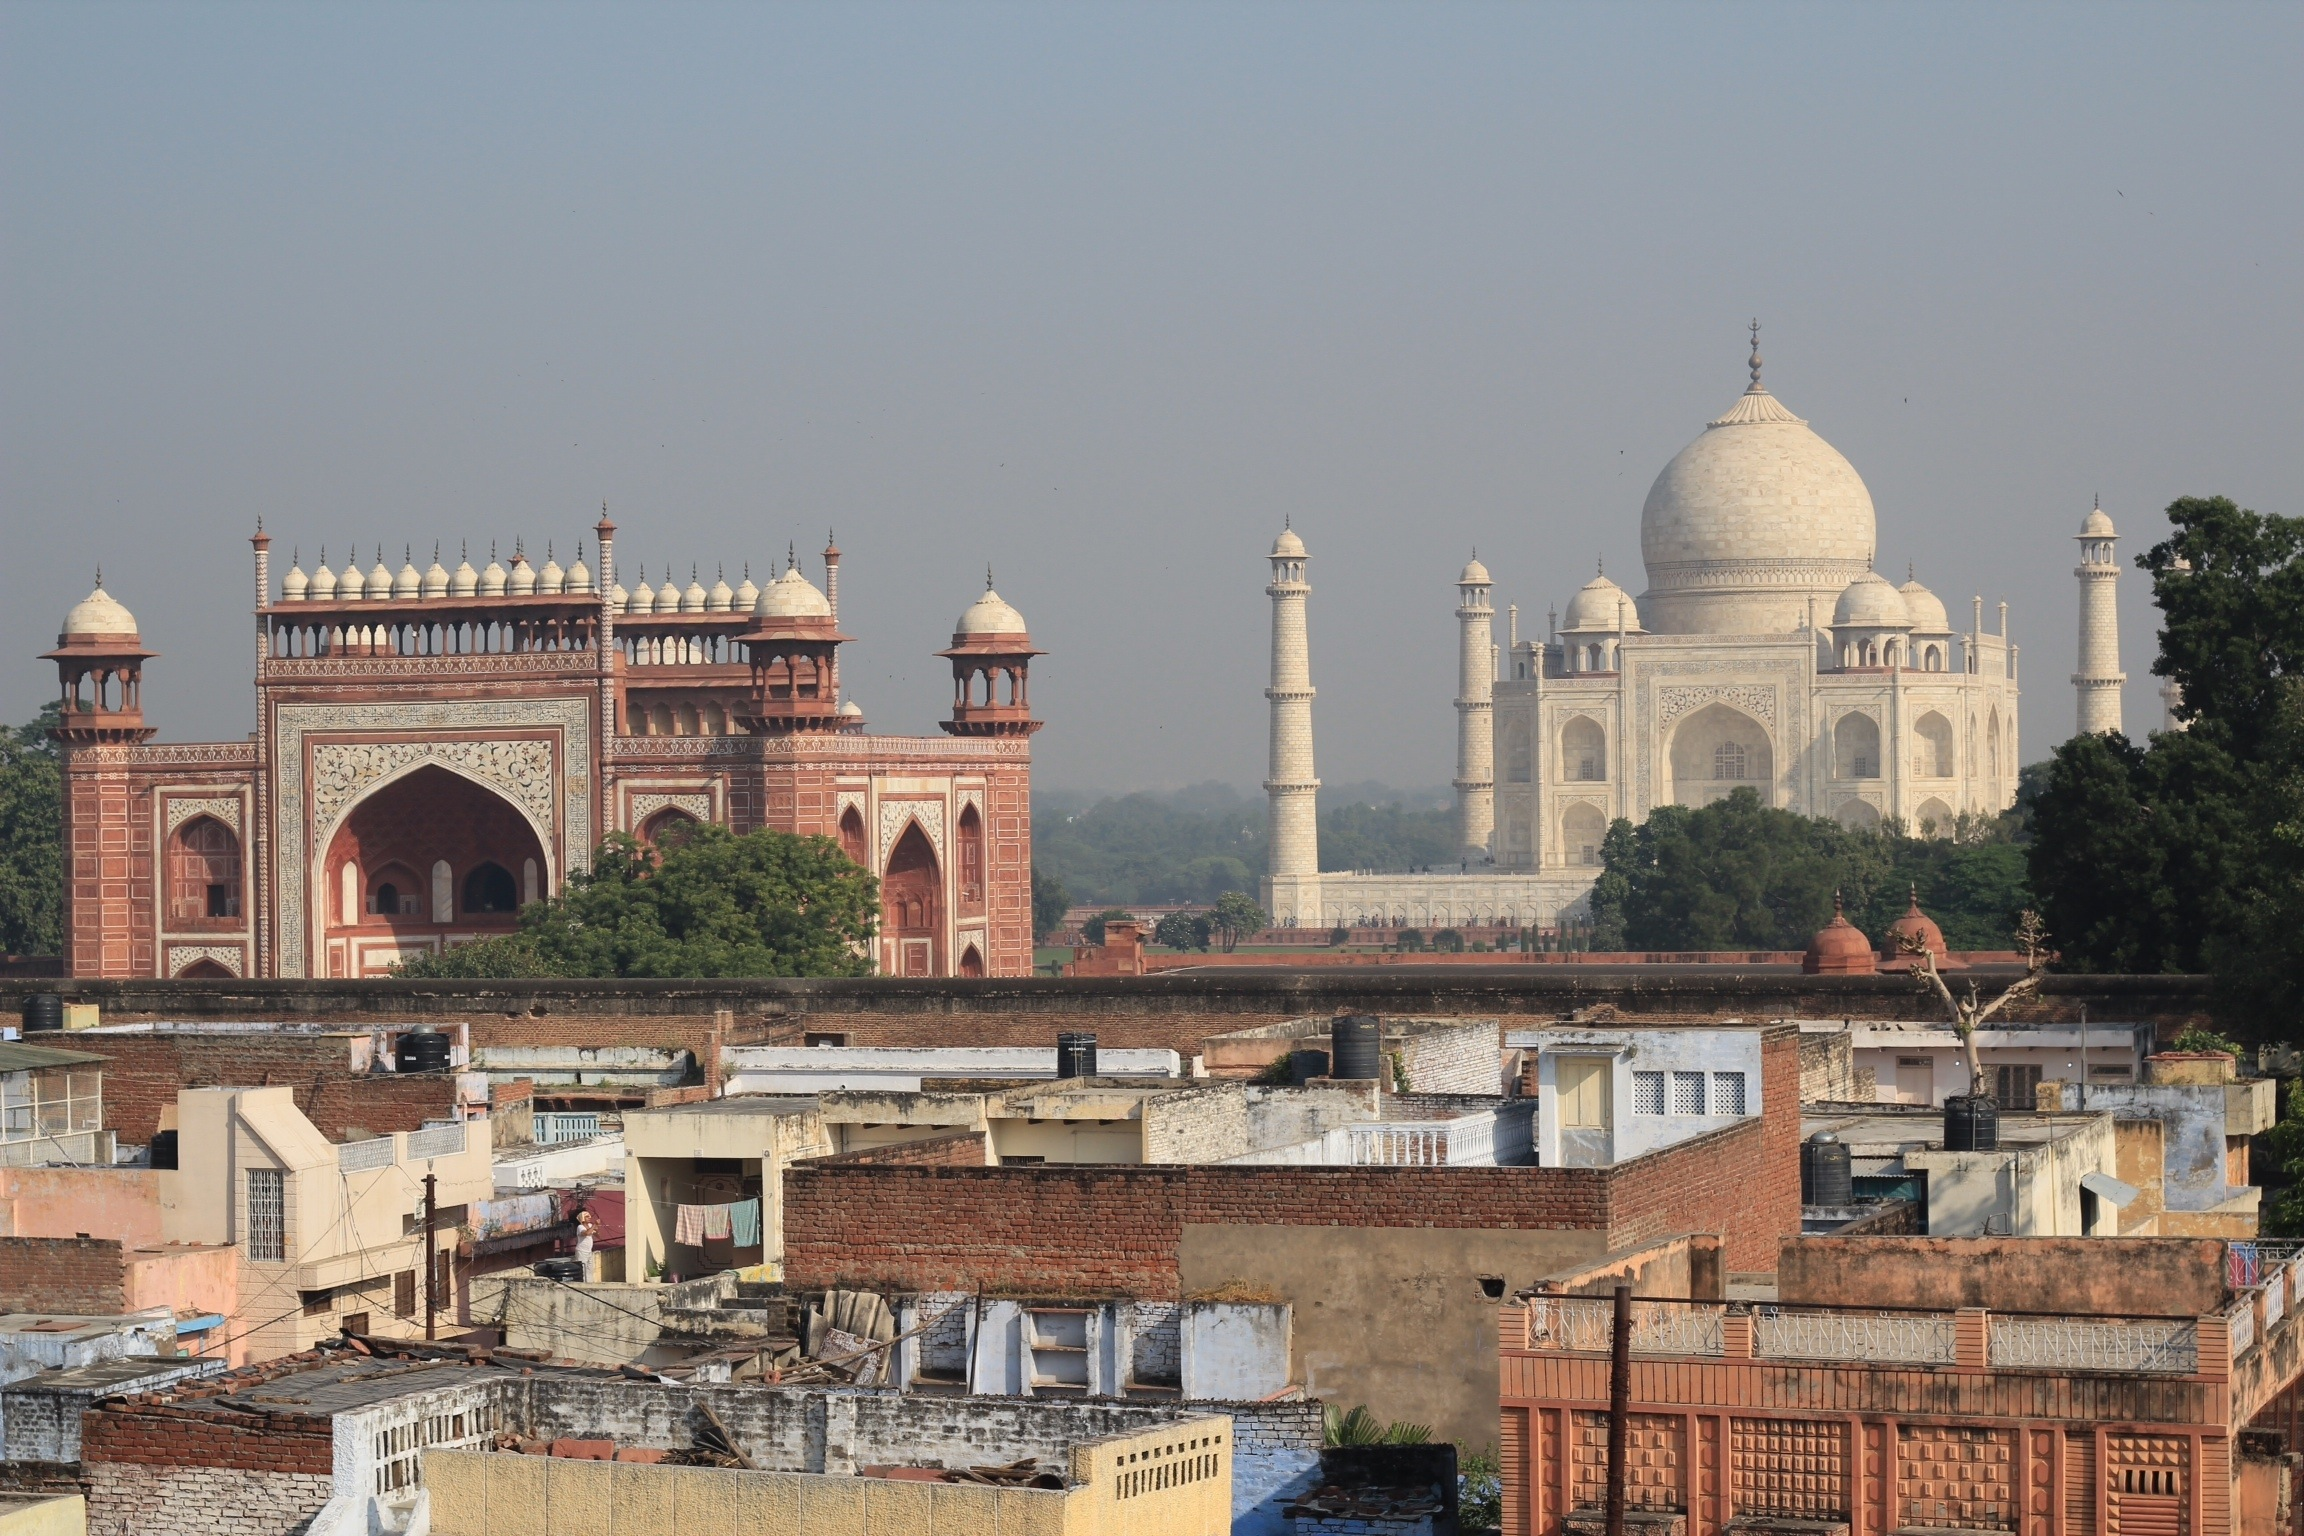 Taj Mahal – (Part II) Proving the Power of Love in Stone